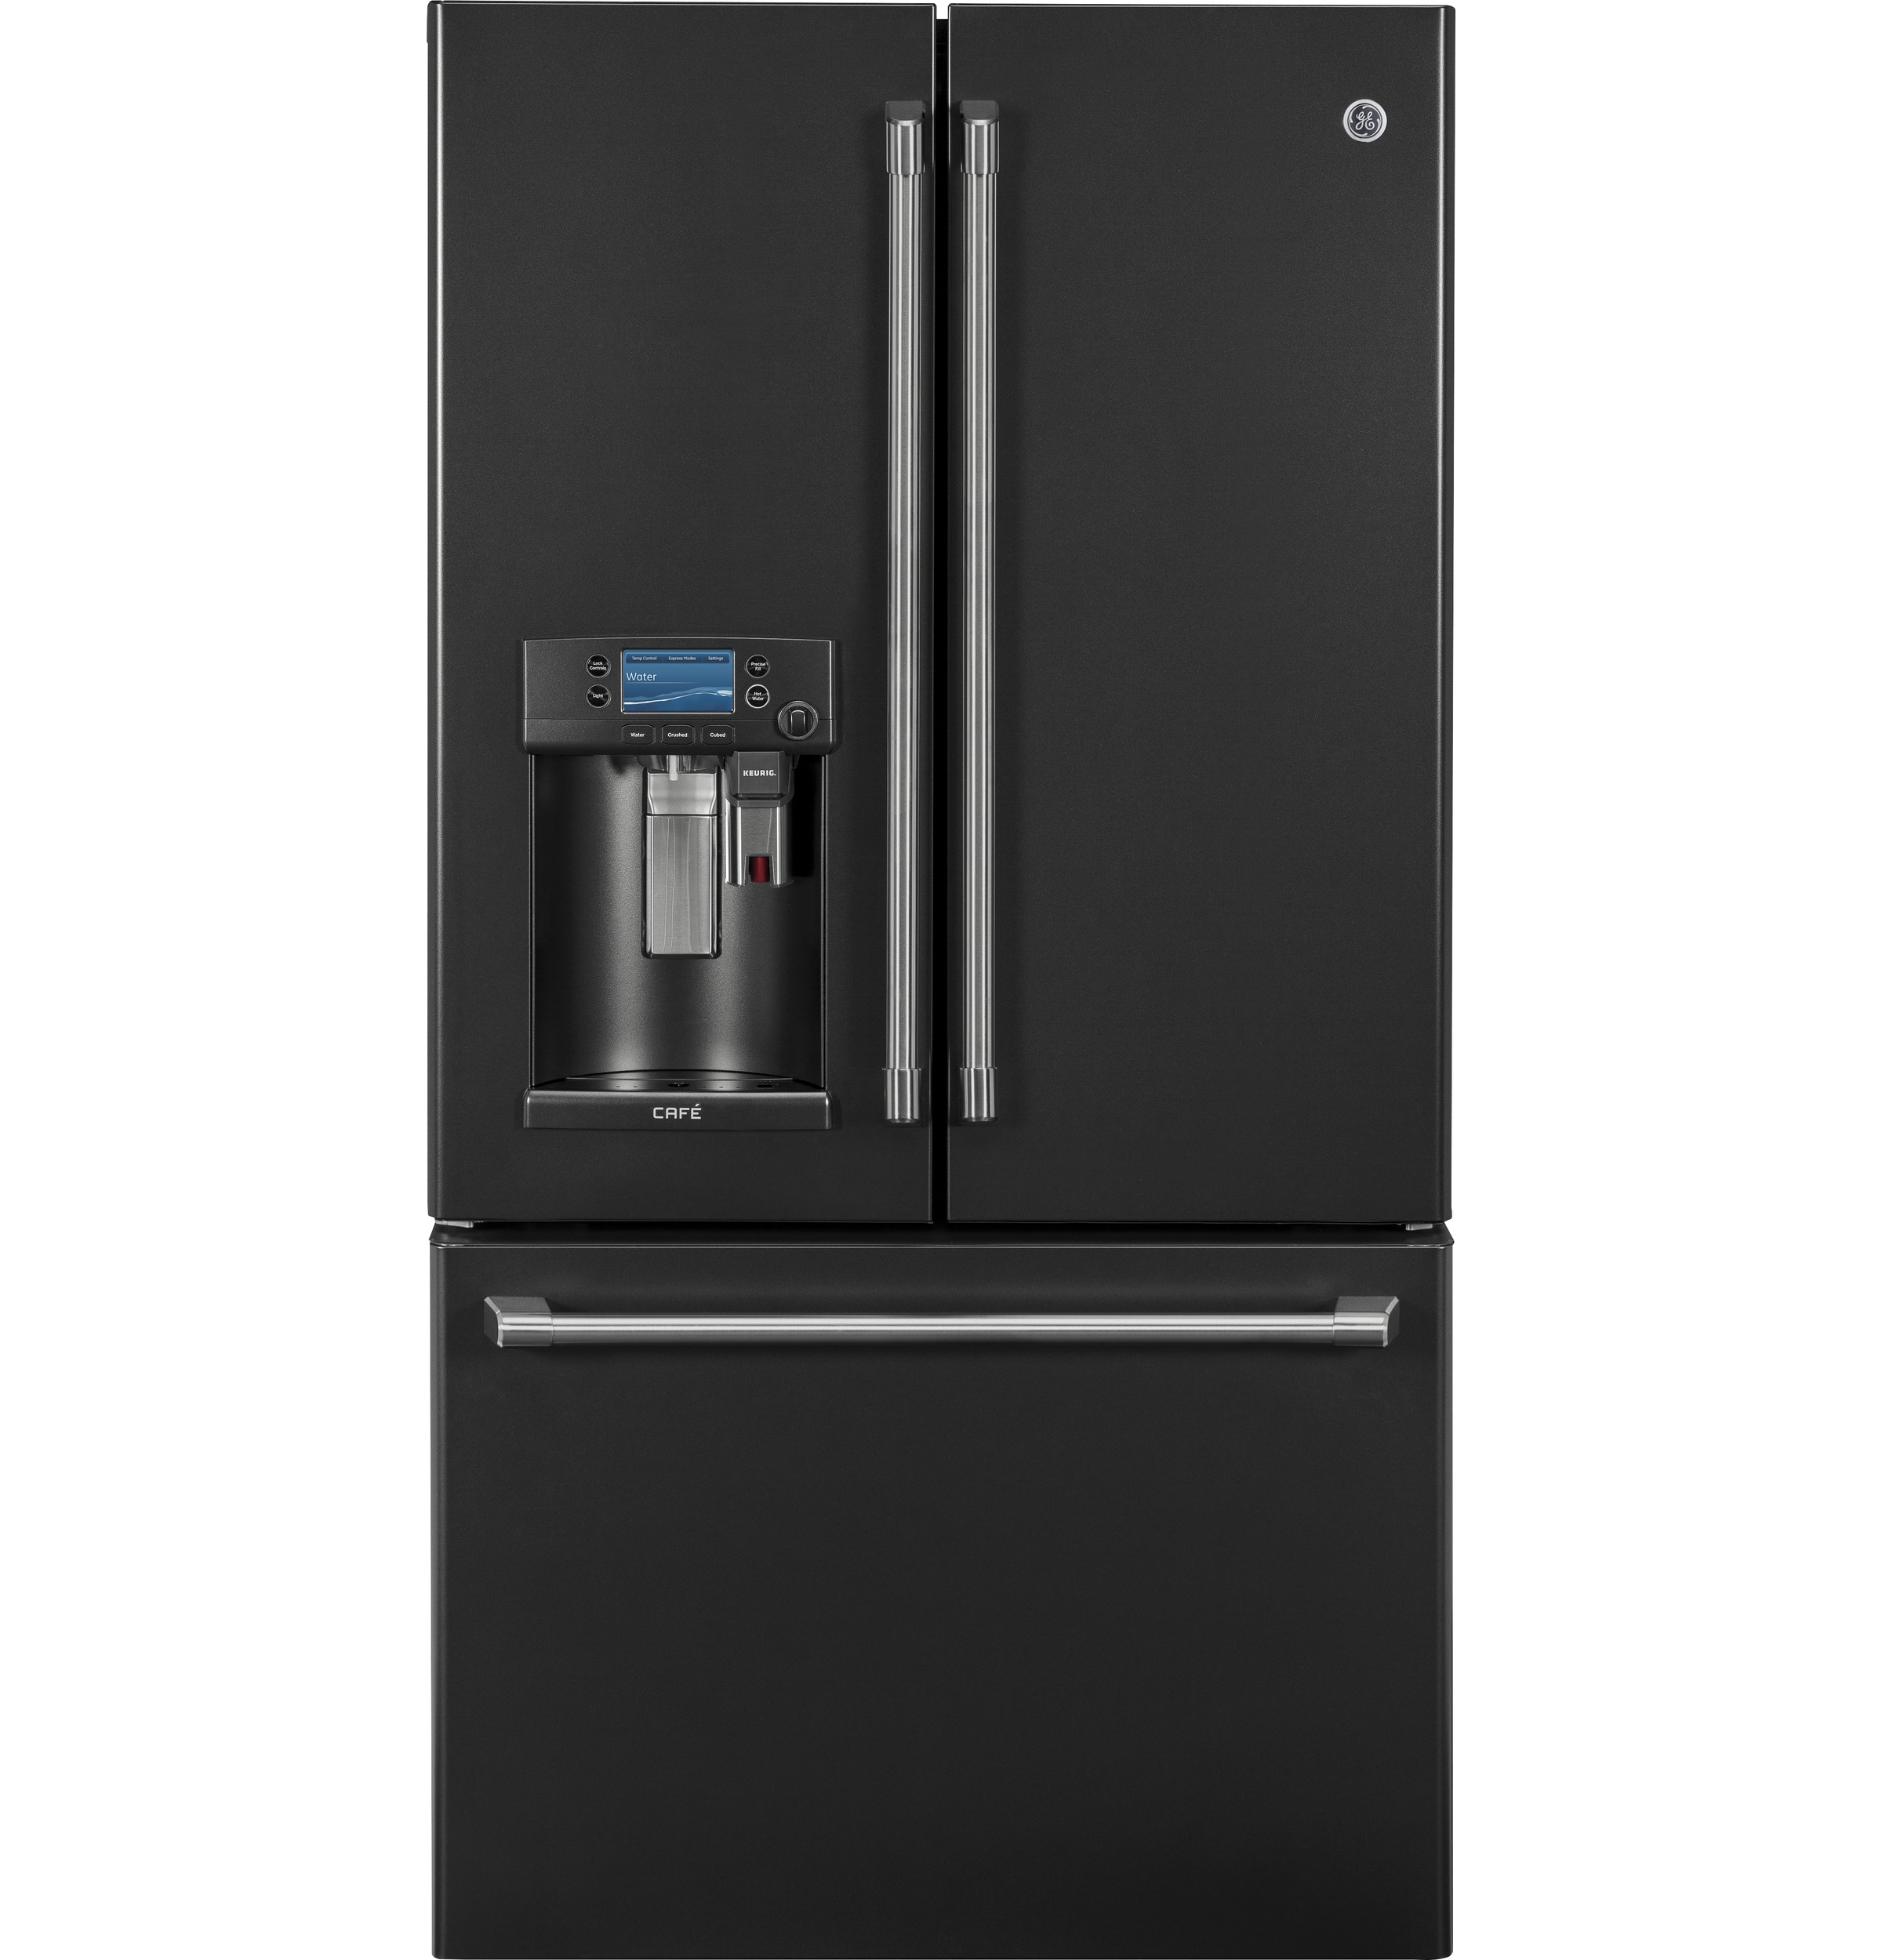 GE Café™ Series® 22.2 Cu. Ft. Counter-Depth French-Door Refrigerator with Keurig® K-Cup®